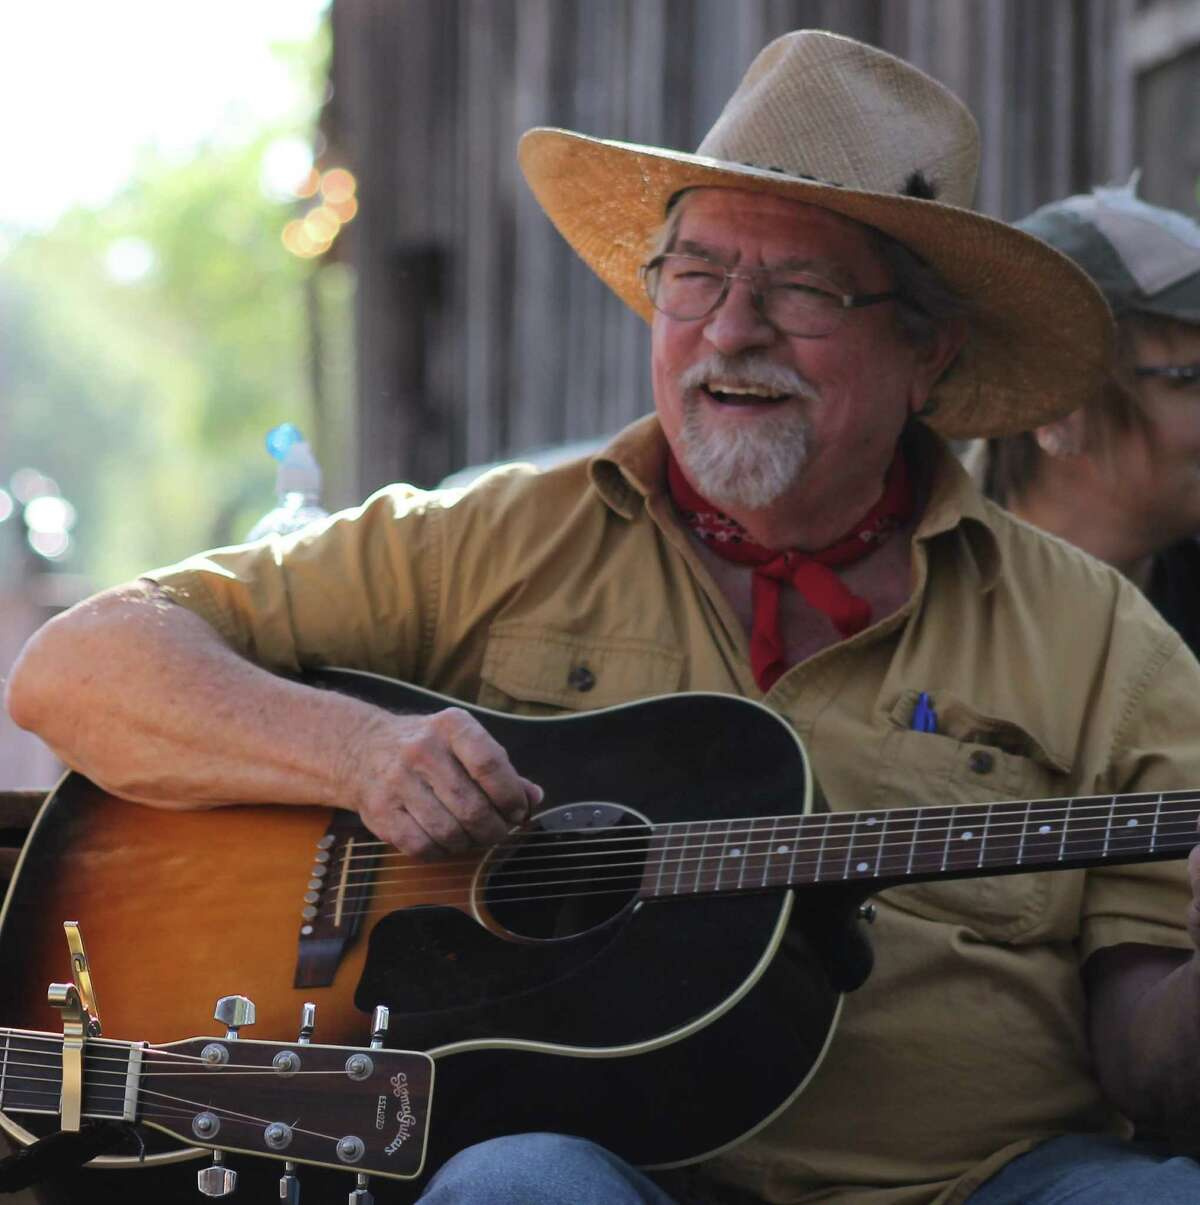 Kent Finlay, owner of the Cheatham Street Warehouse in San Marcos, nurtured many well-known singer-songwriters.